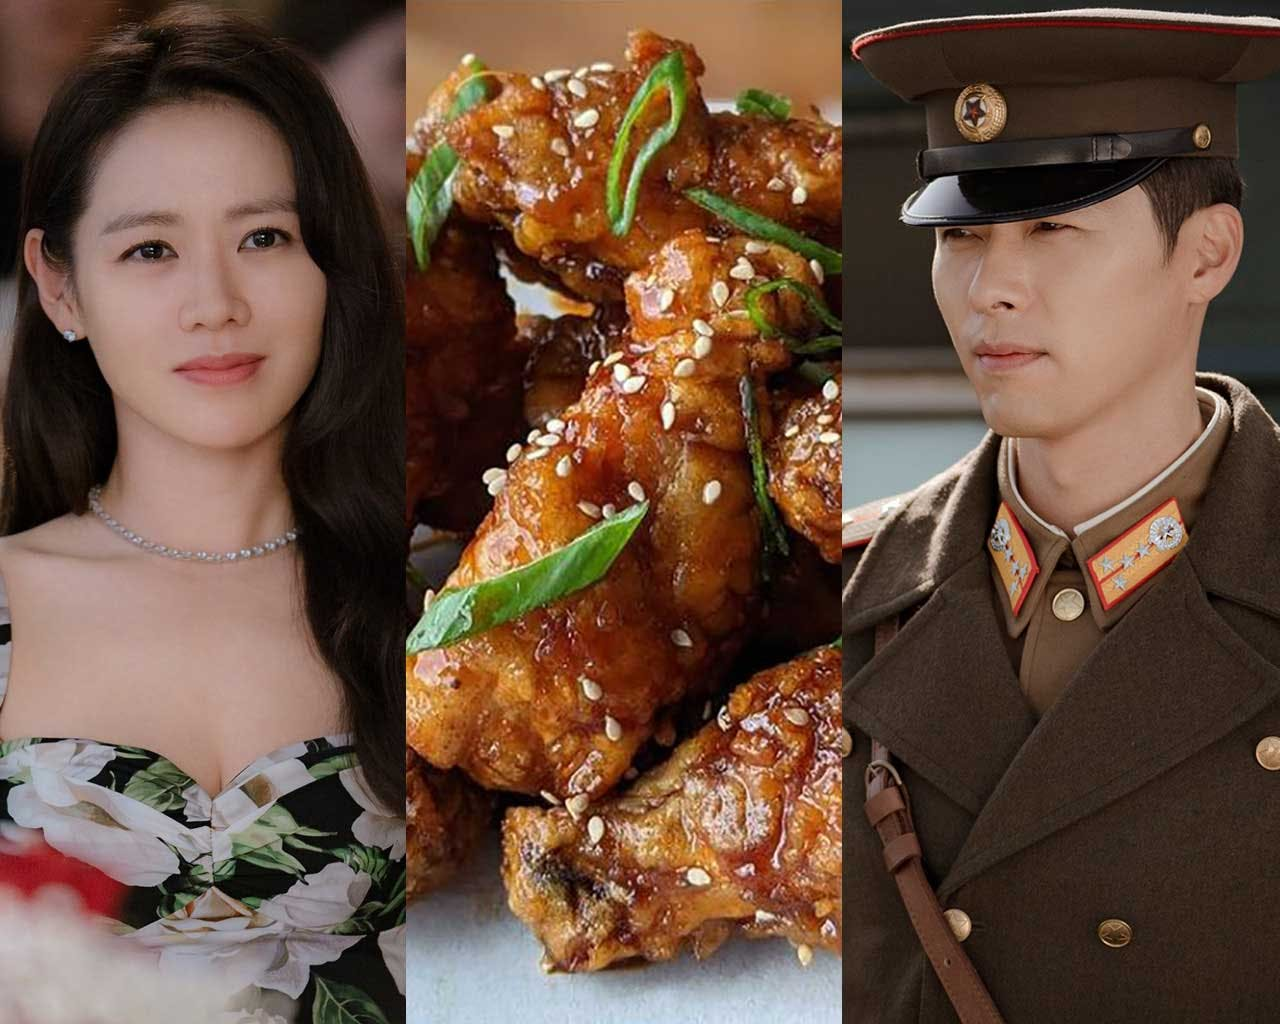 K-Drama-Inspired Dishes: 3 Easy Recipes You Can Make At Home